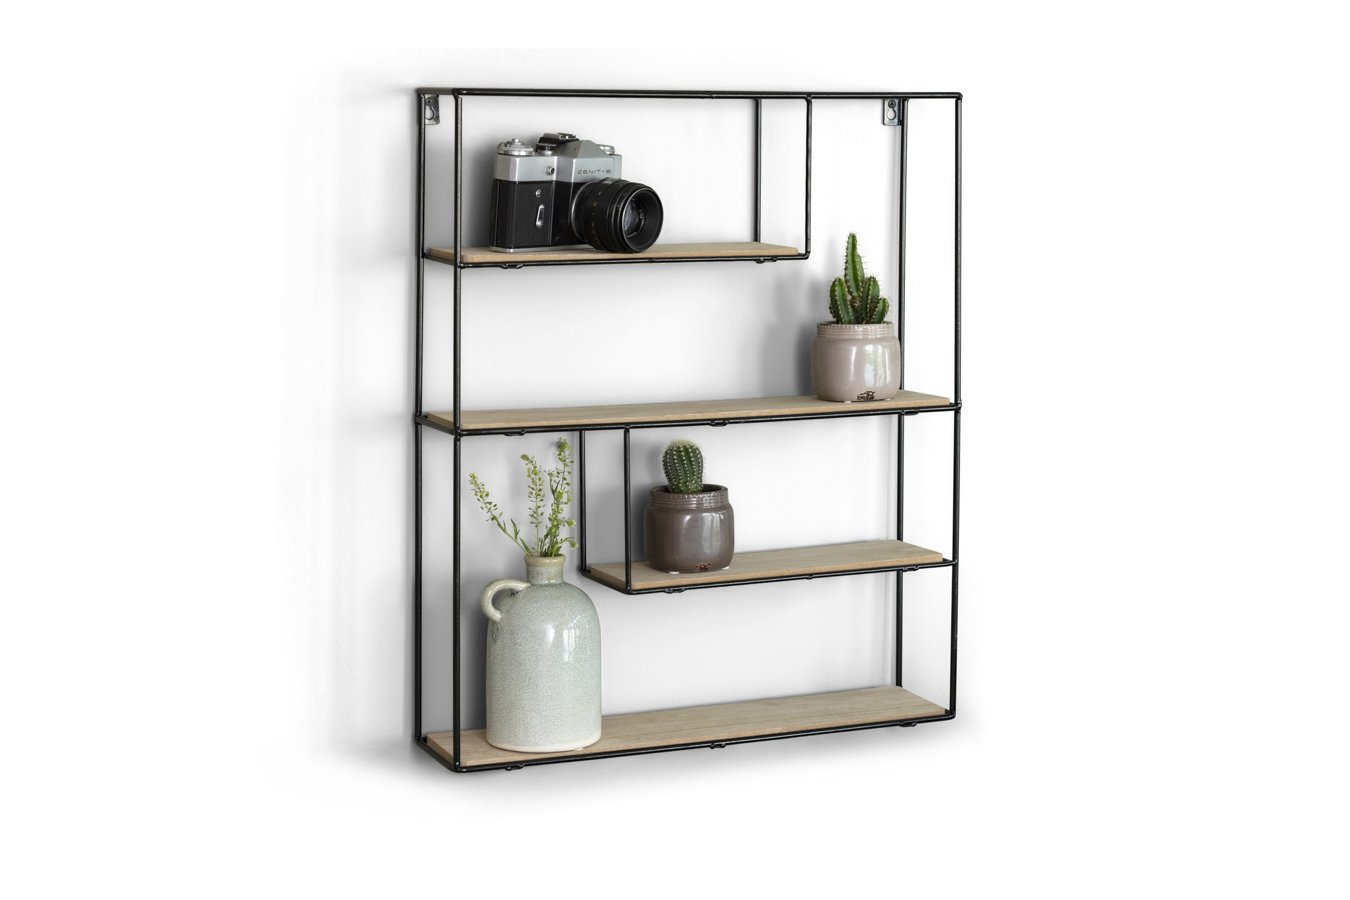 lifa living rectangle wall shelf unit tier floating metal shelves for kitchen make your own ture ledge island with cabinets and seating ladder melbourne corner shower dimensions